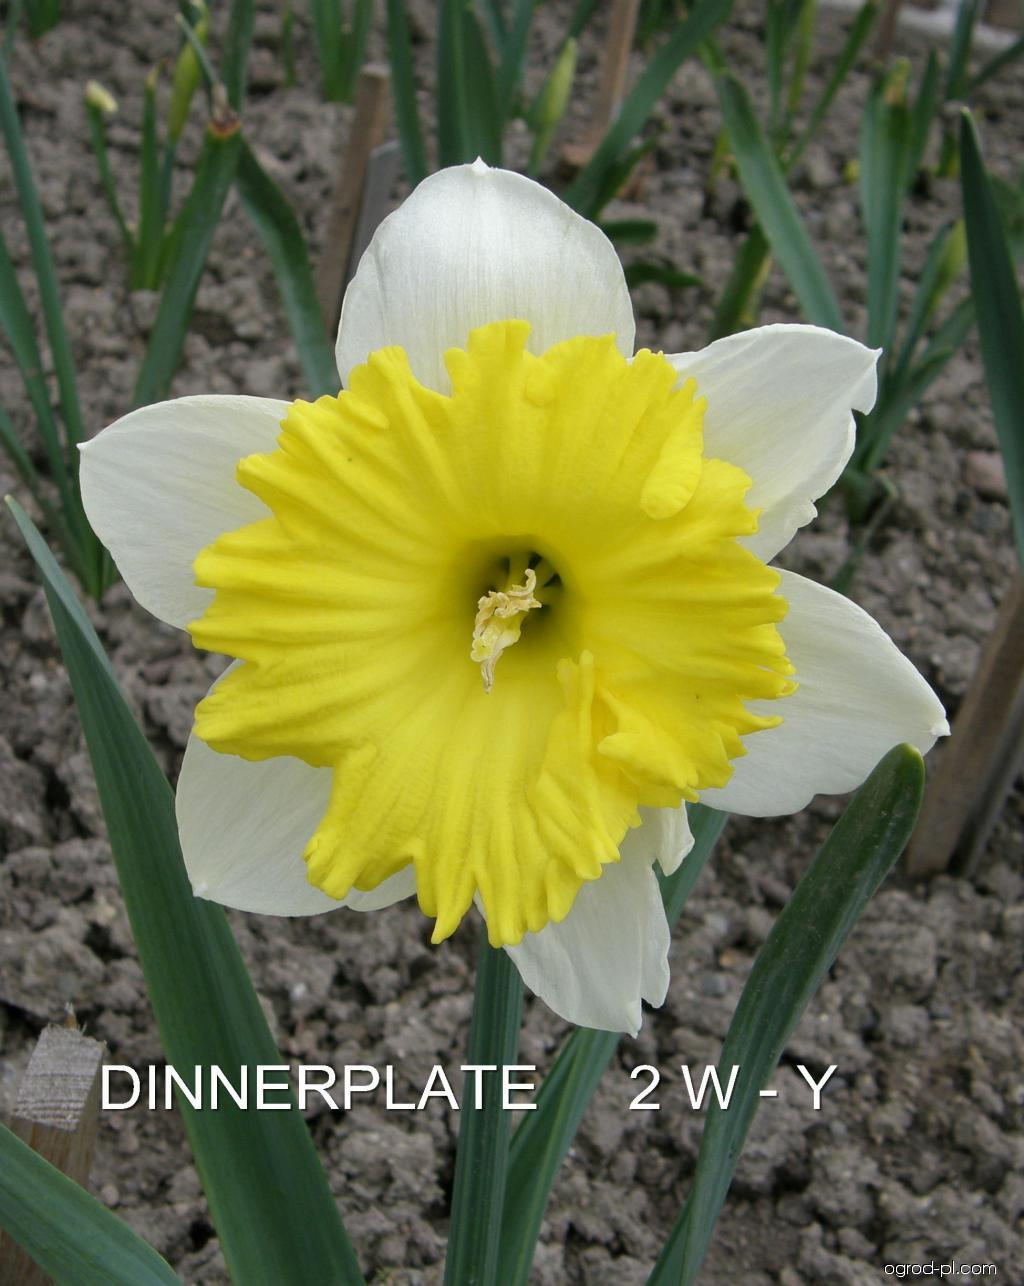 Narcissus Dinnerplate (narcyz)